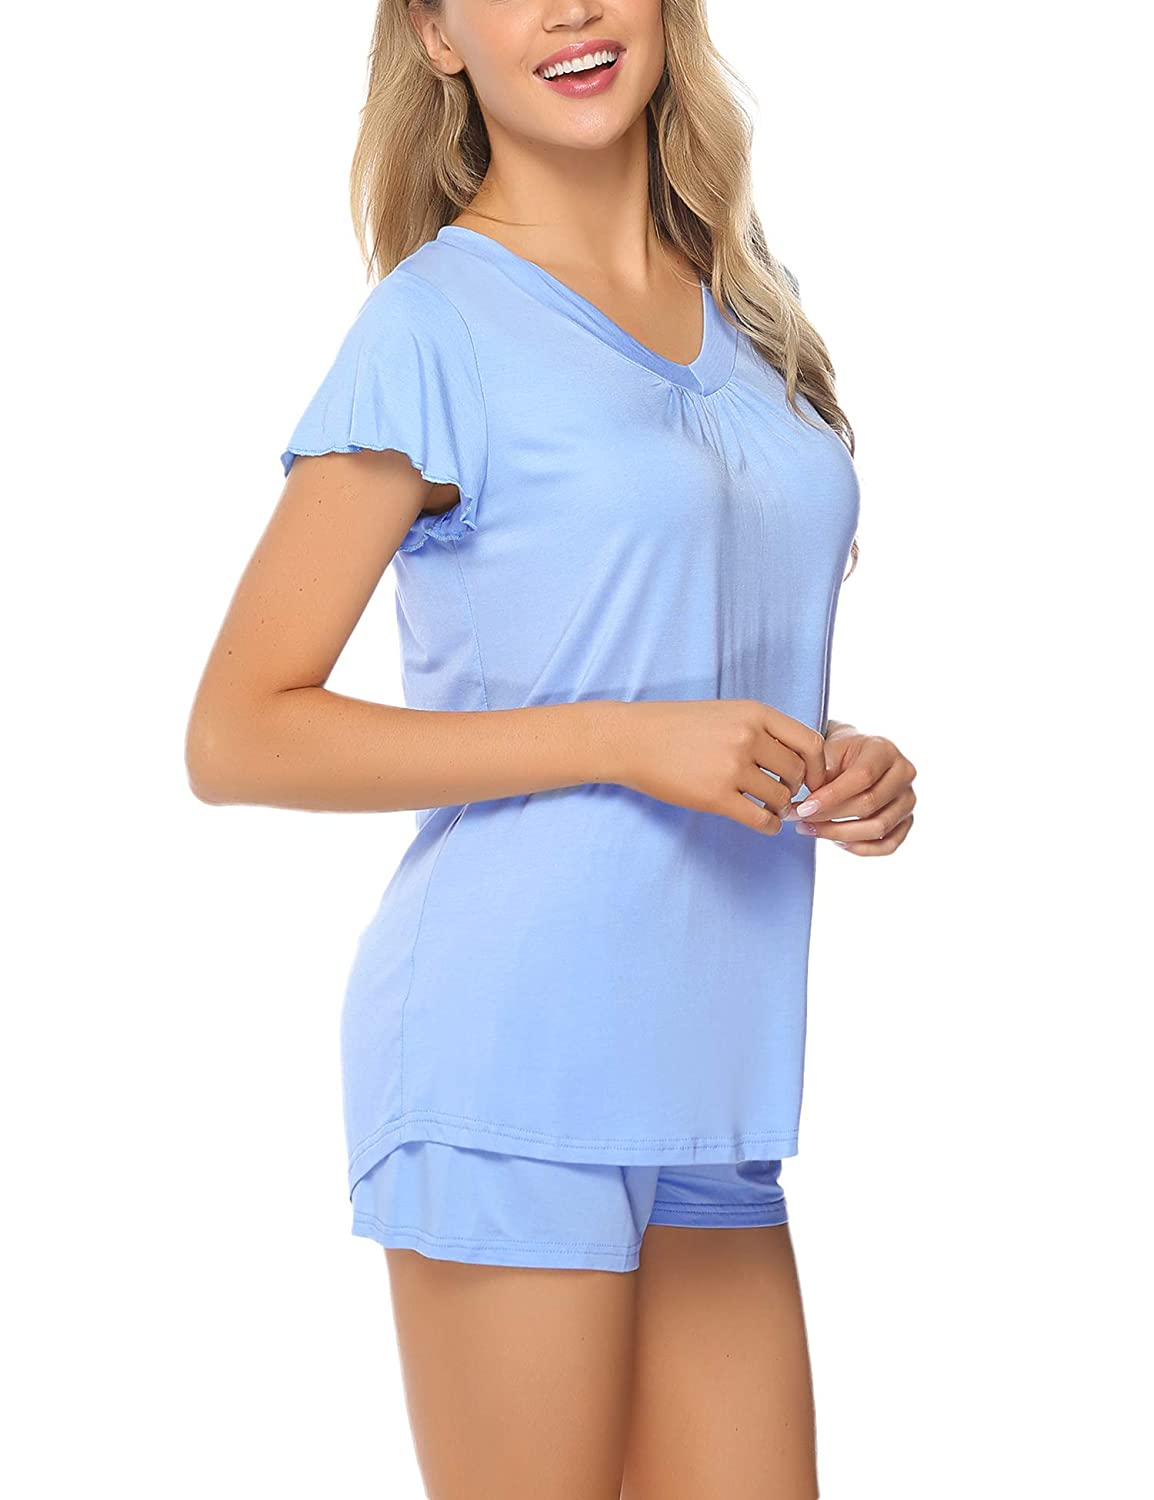 Aibrou Womens Pyjama Shorts Set Cotton Shorty Sleeved Loungerwear PJ Set for Summer